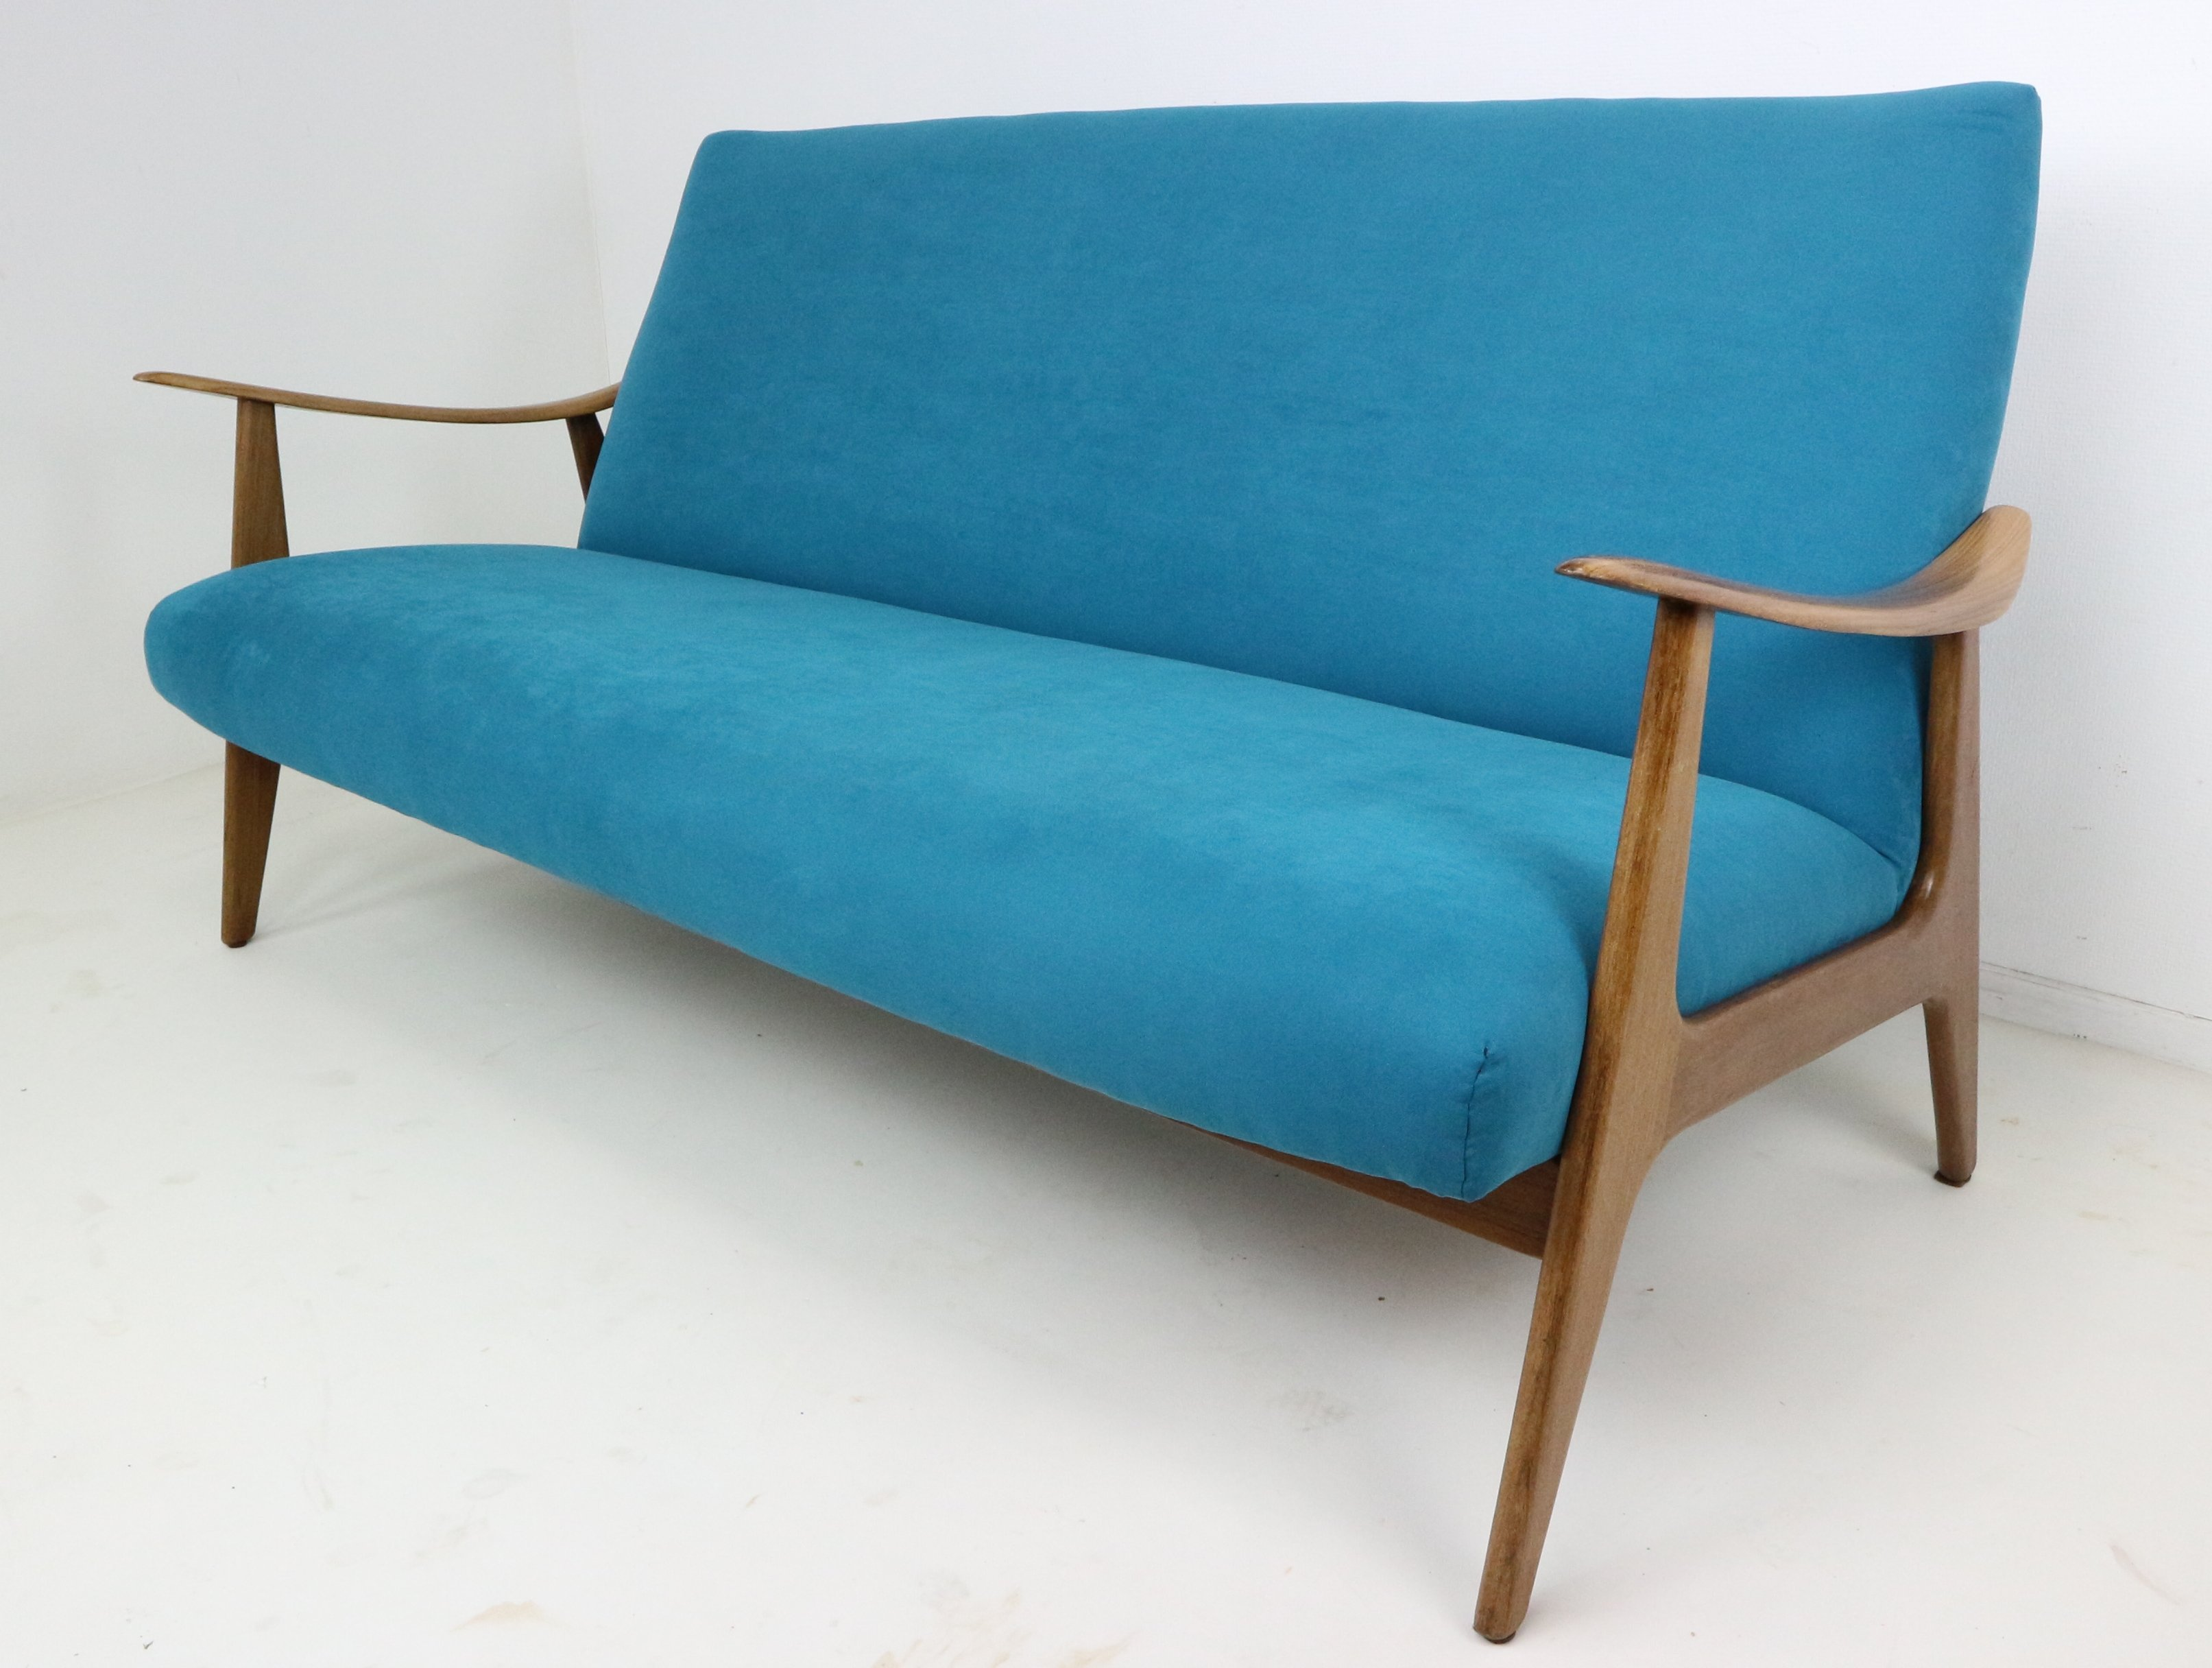 danish design teak sofa with blue velvet upholstery 1960s 74083. Black Bedroom Furniture Sets. Home Design Ideas